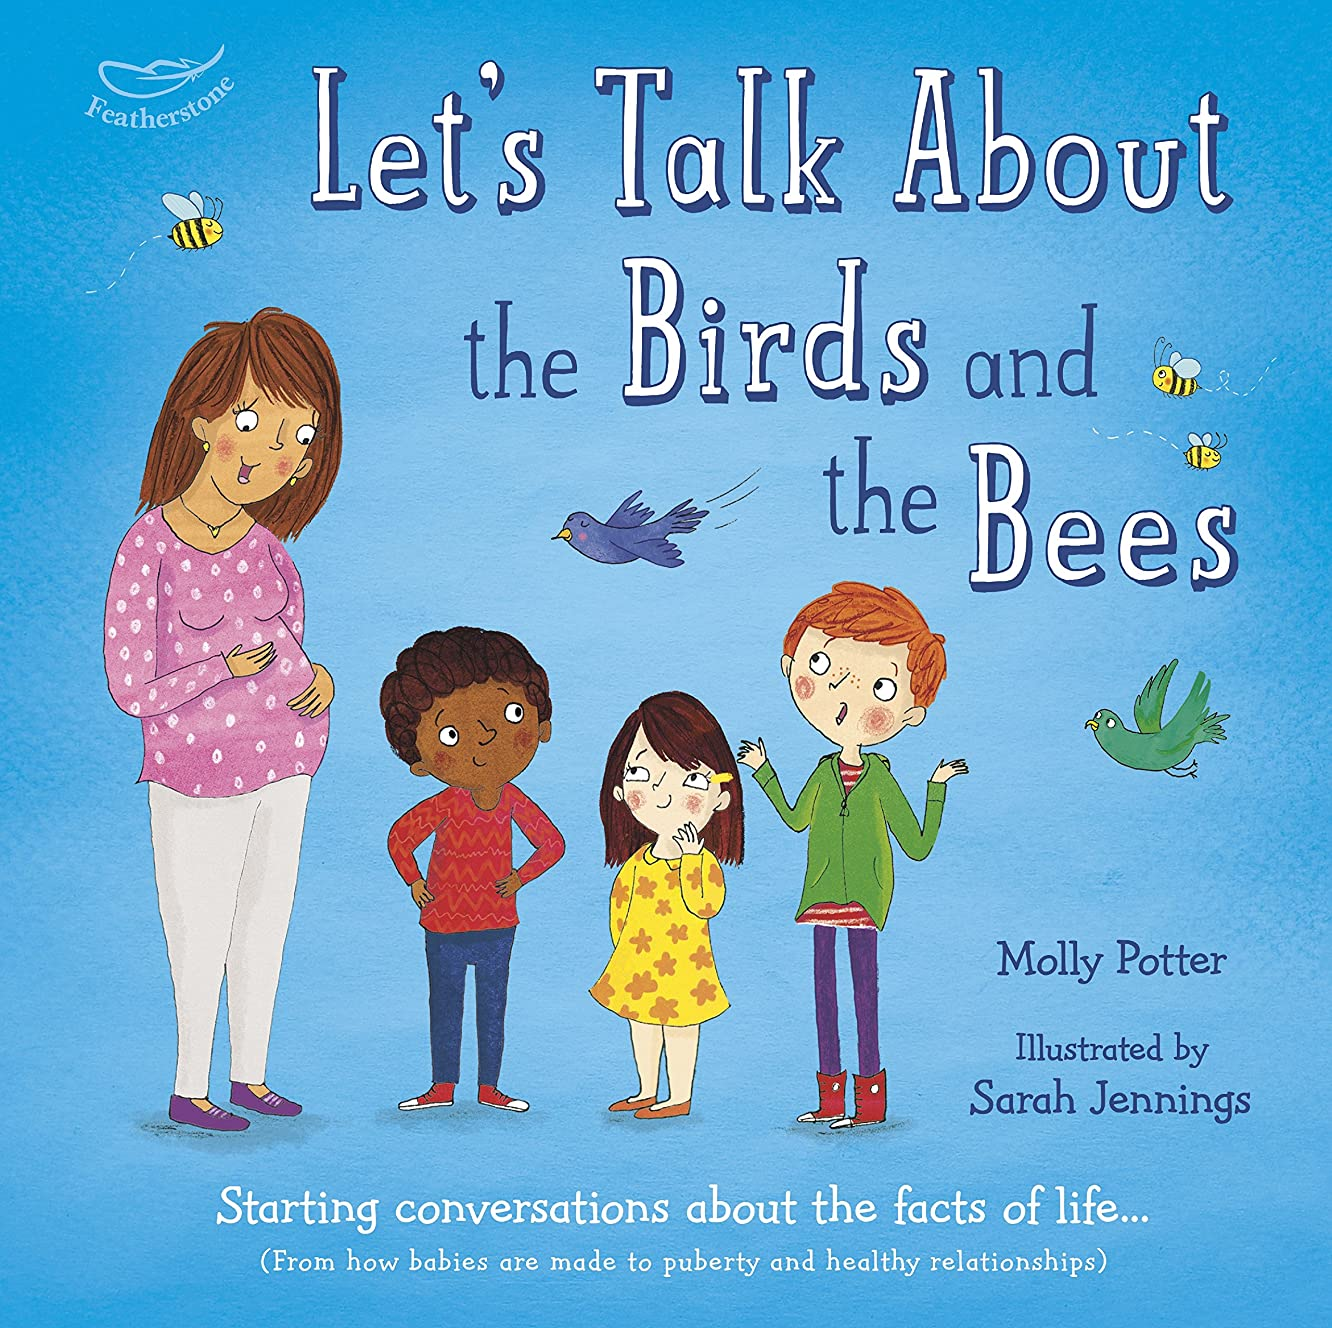 ジョグ省略する疑問を超えてLet's Talk About the Birds and the Bees: Starting conversations about the facts of life (From how babies are made to puberty and healthy relationships) (English Edition)